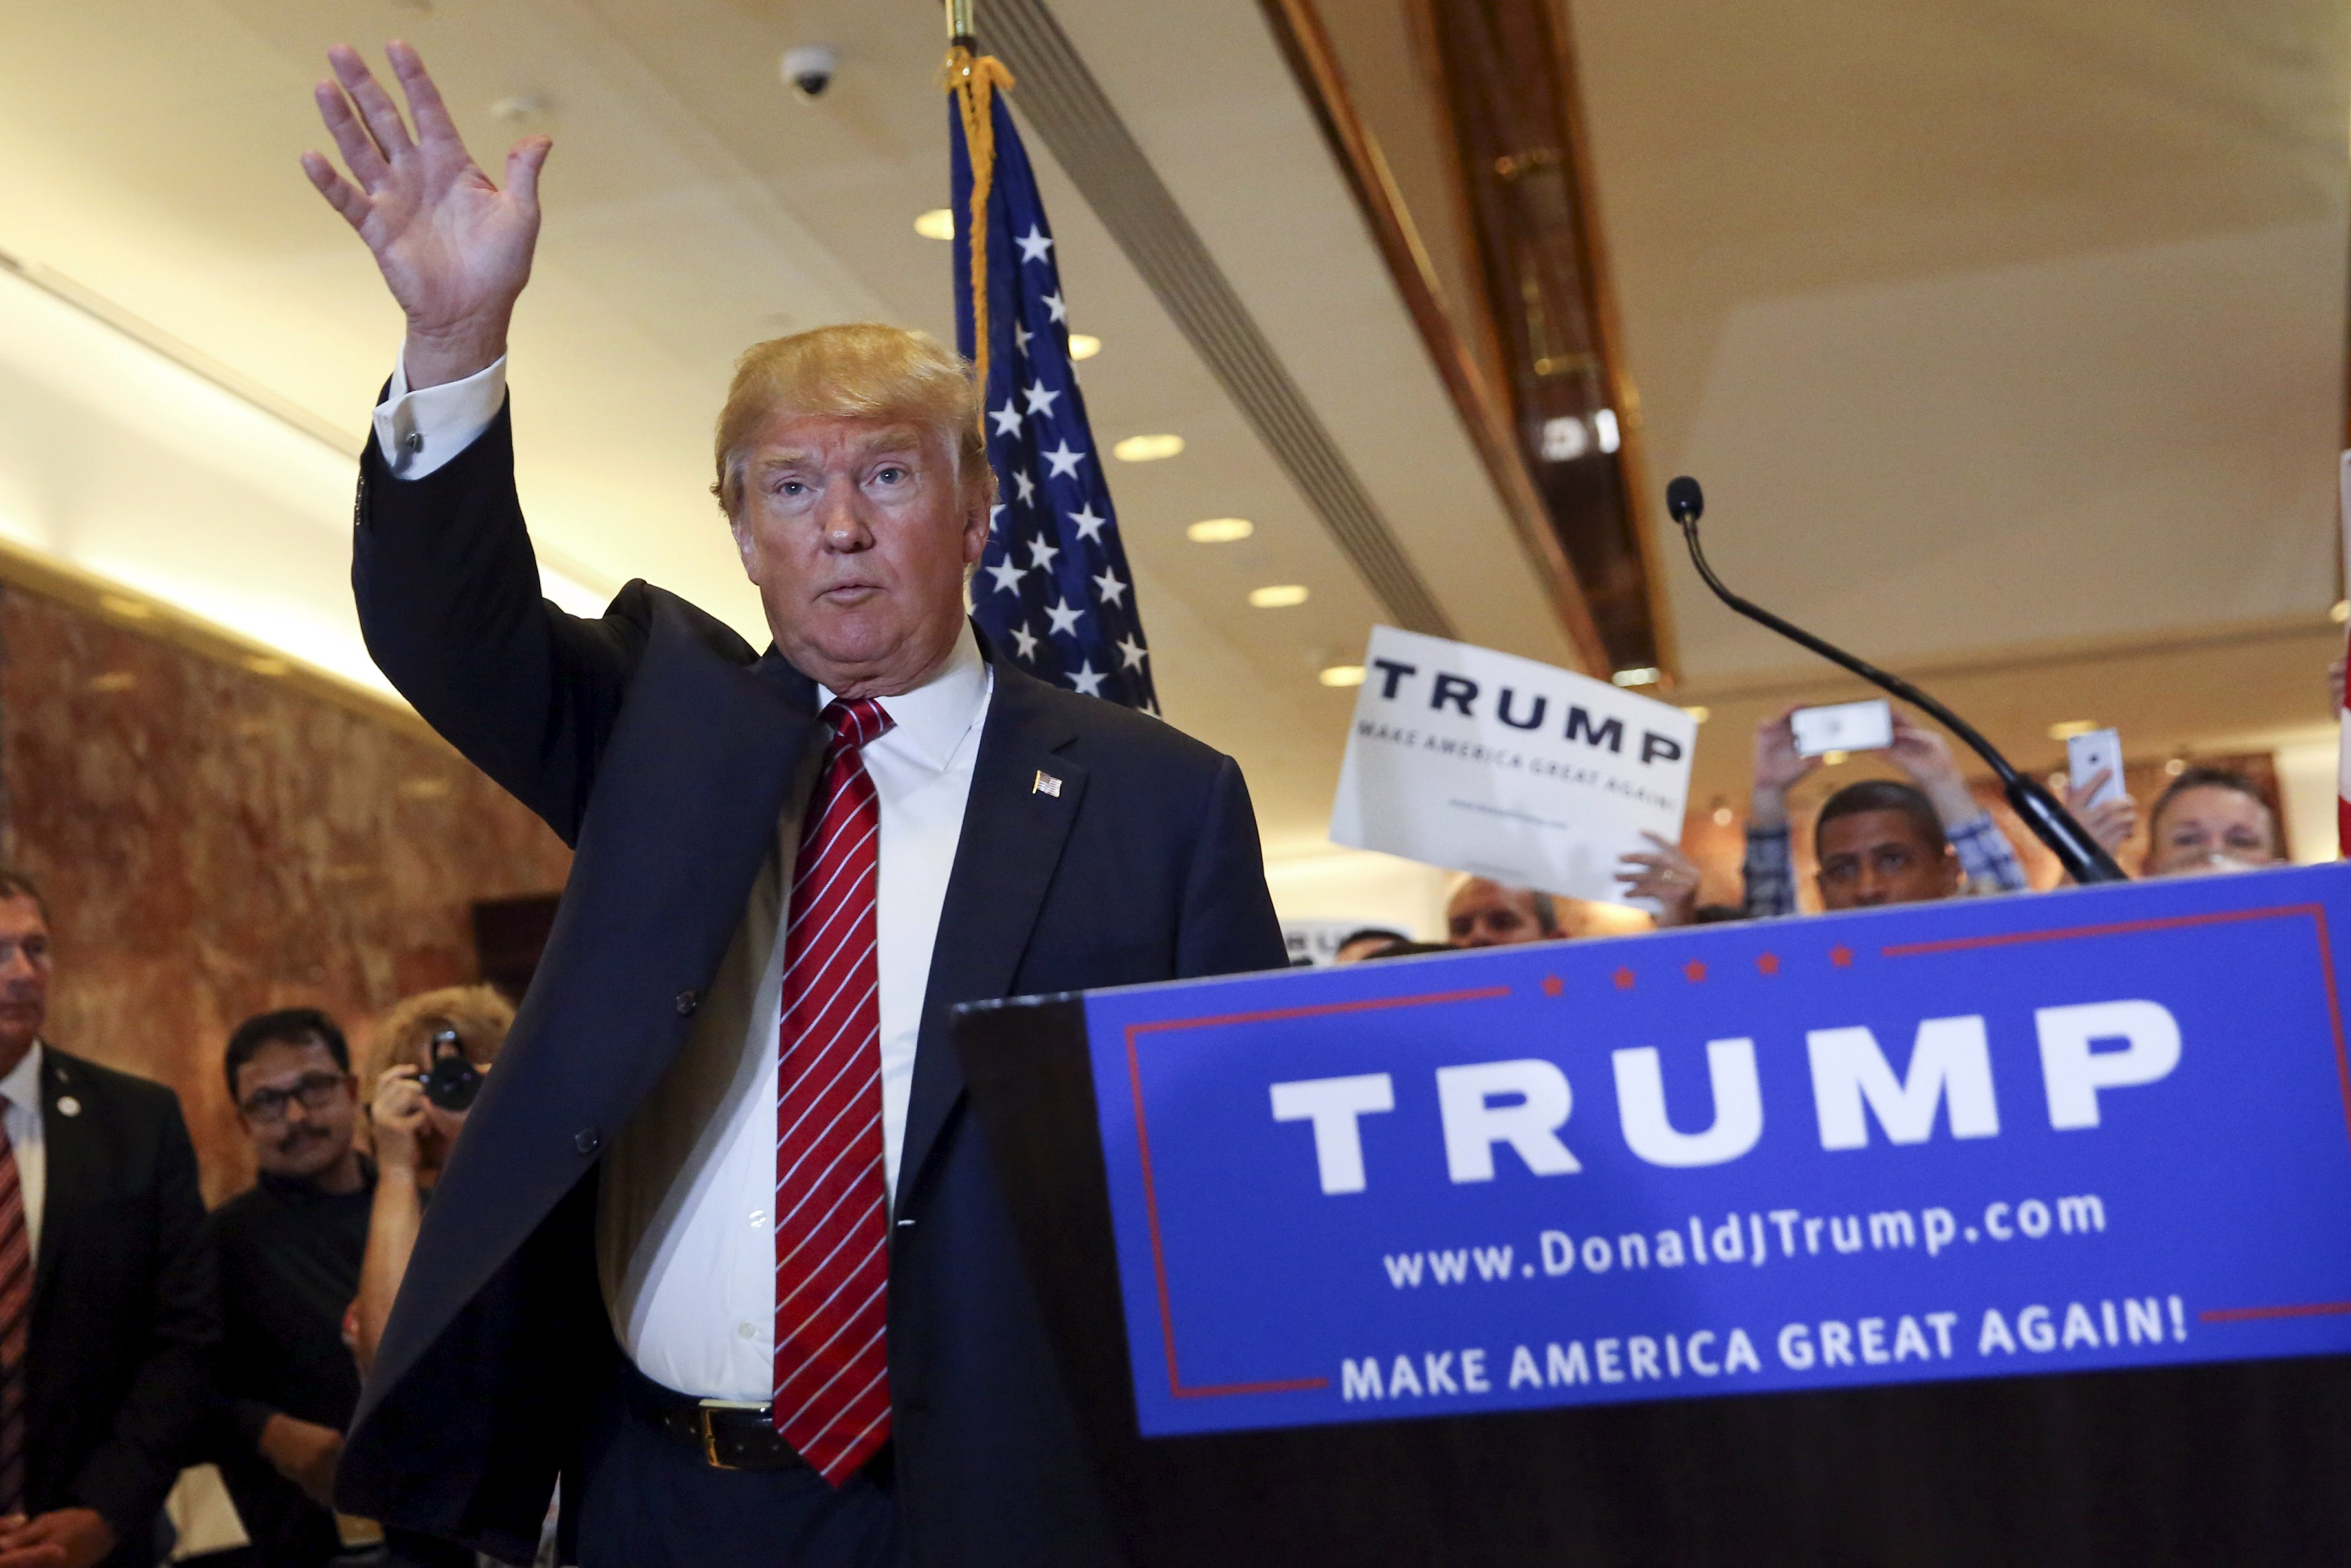 Election 2016: Trump's tax plan would help the poorest ...